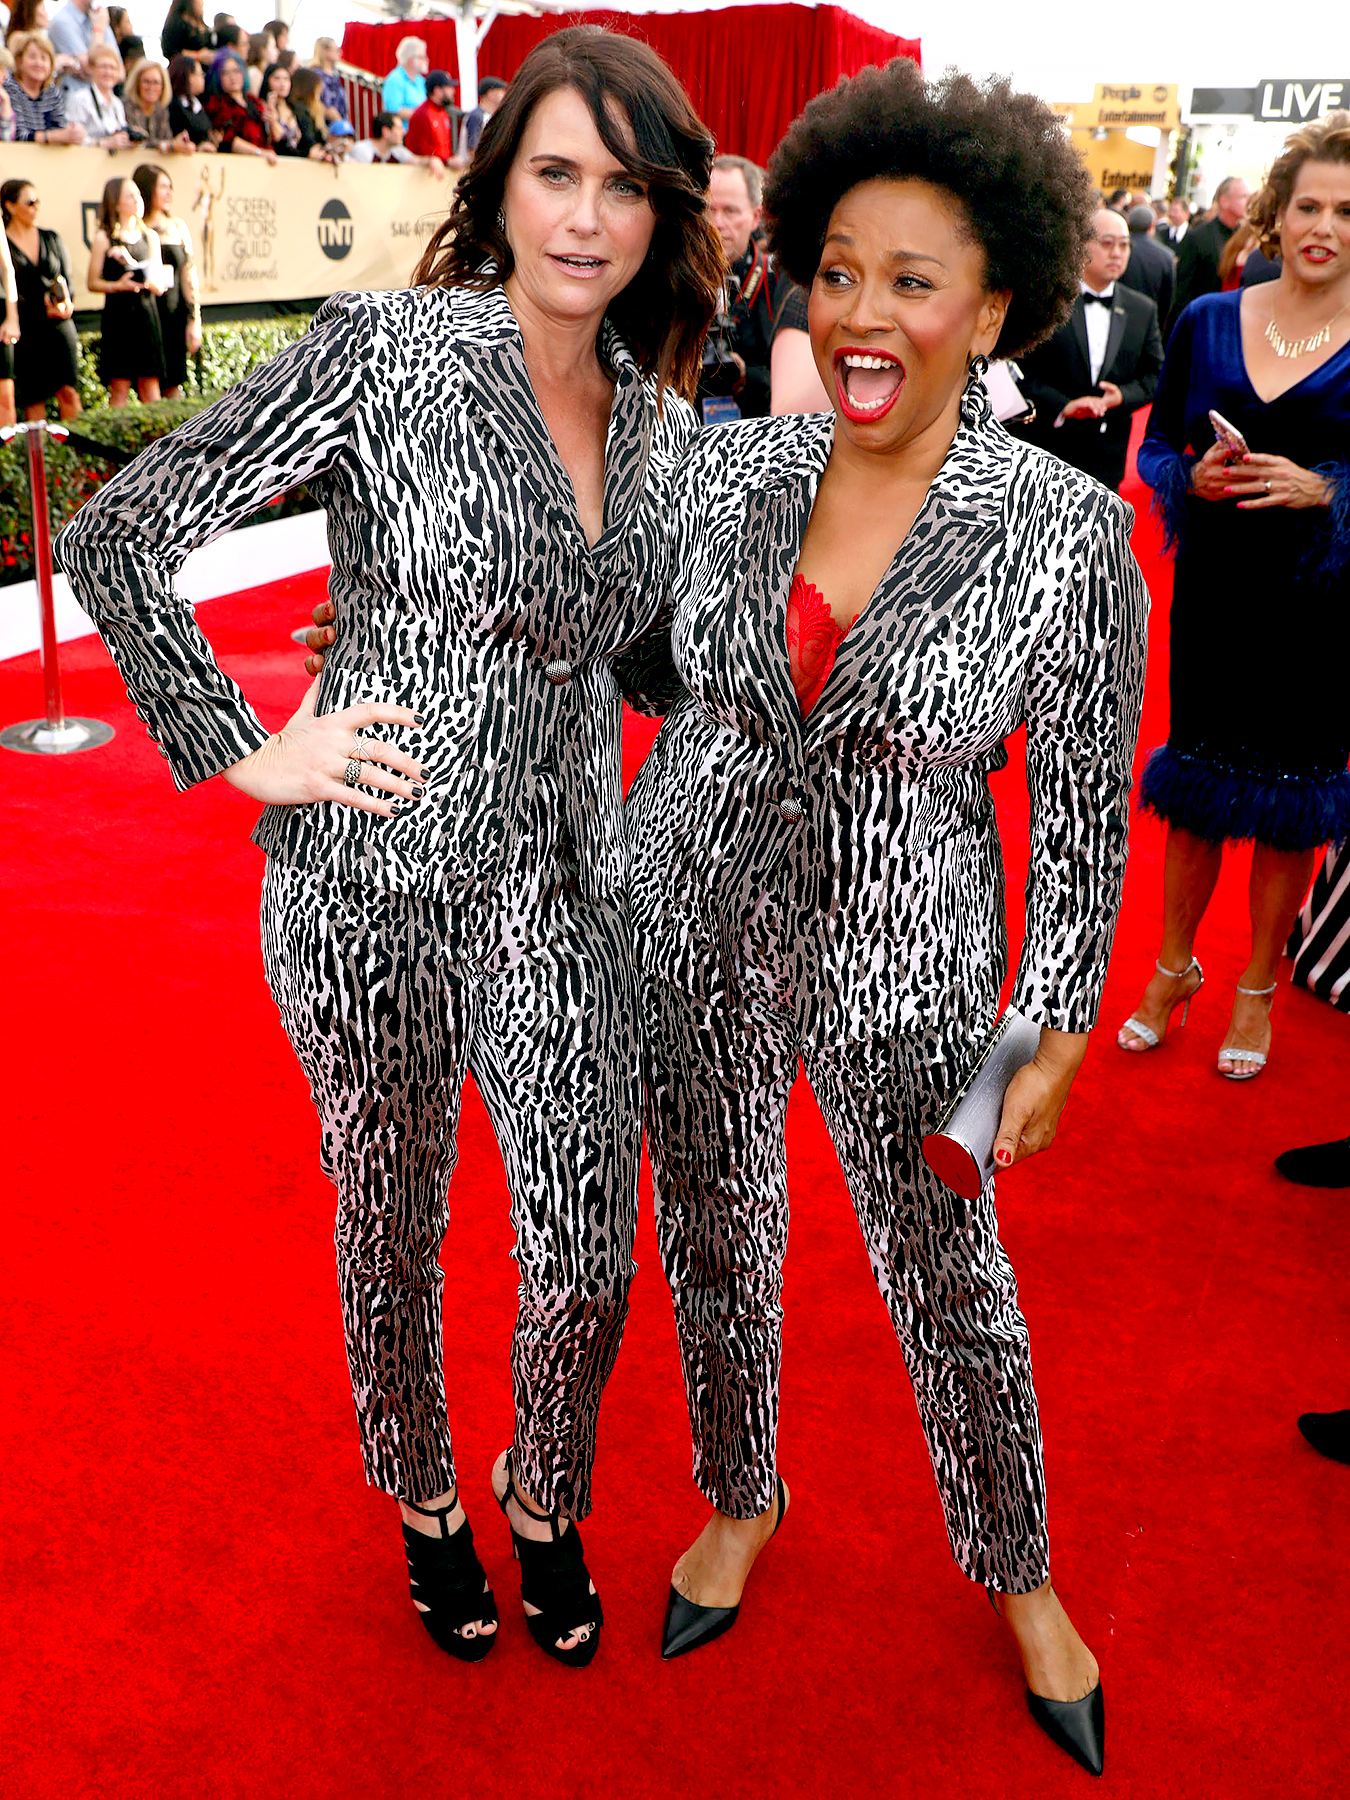 Amy Landecker, left, and Jenifer Lewis arrive at the 23rd annual Screen Actors Guild Awards at the Shrine Auditorium & Expo Hall on Sunday, Jan. 29, 2017, in Los Angeles.